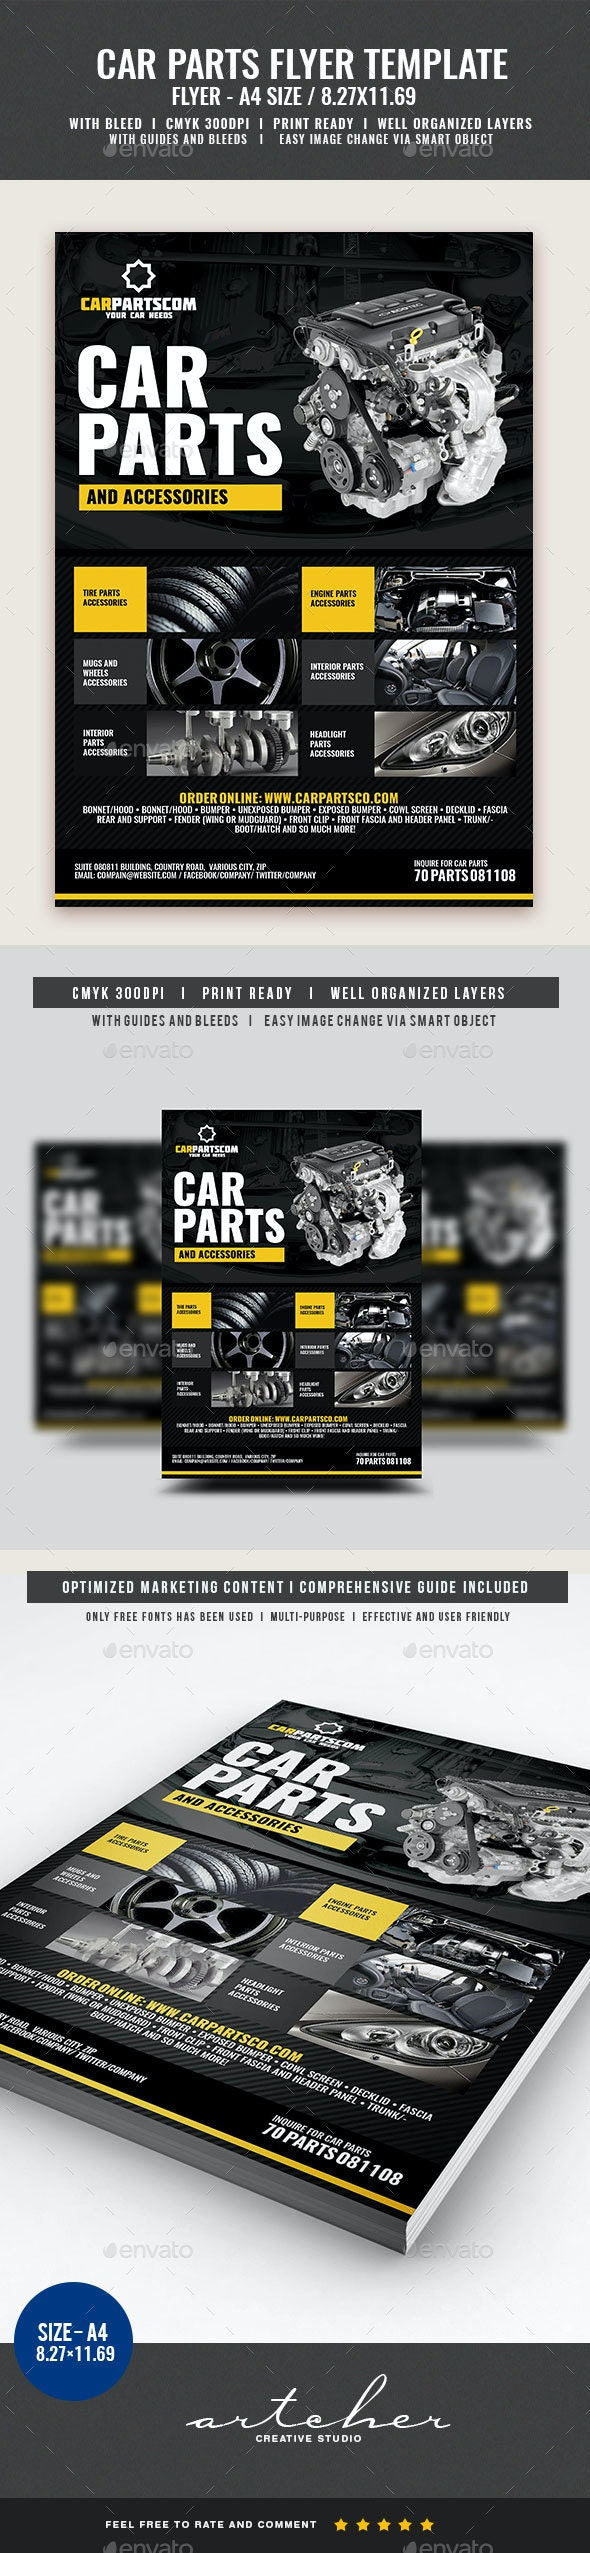 Car Parts and Accessories Flyer - Commerce Flyers